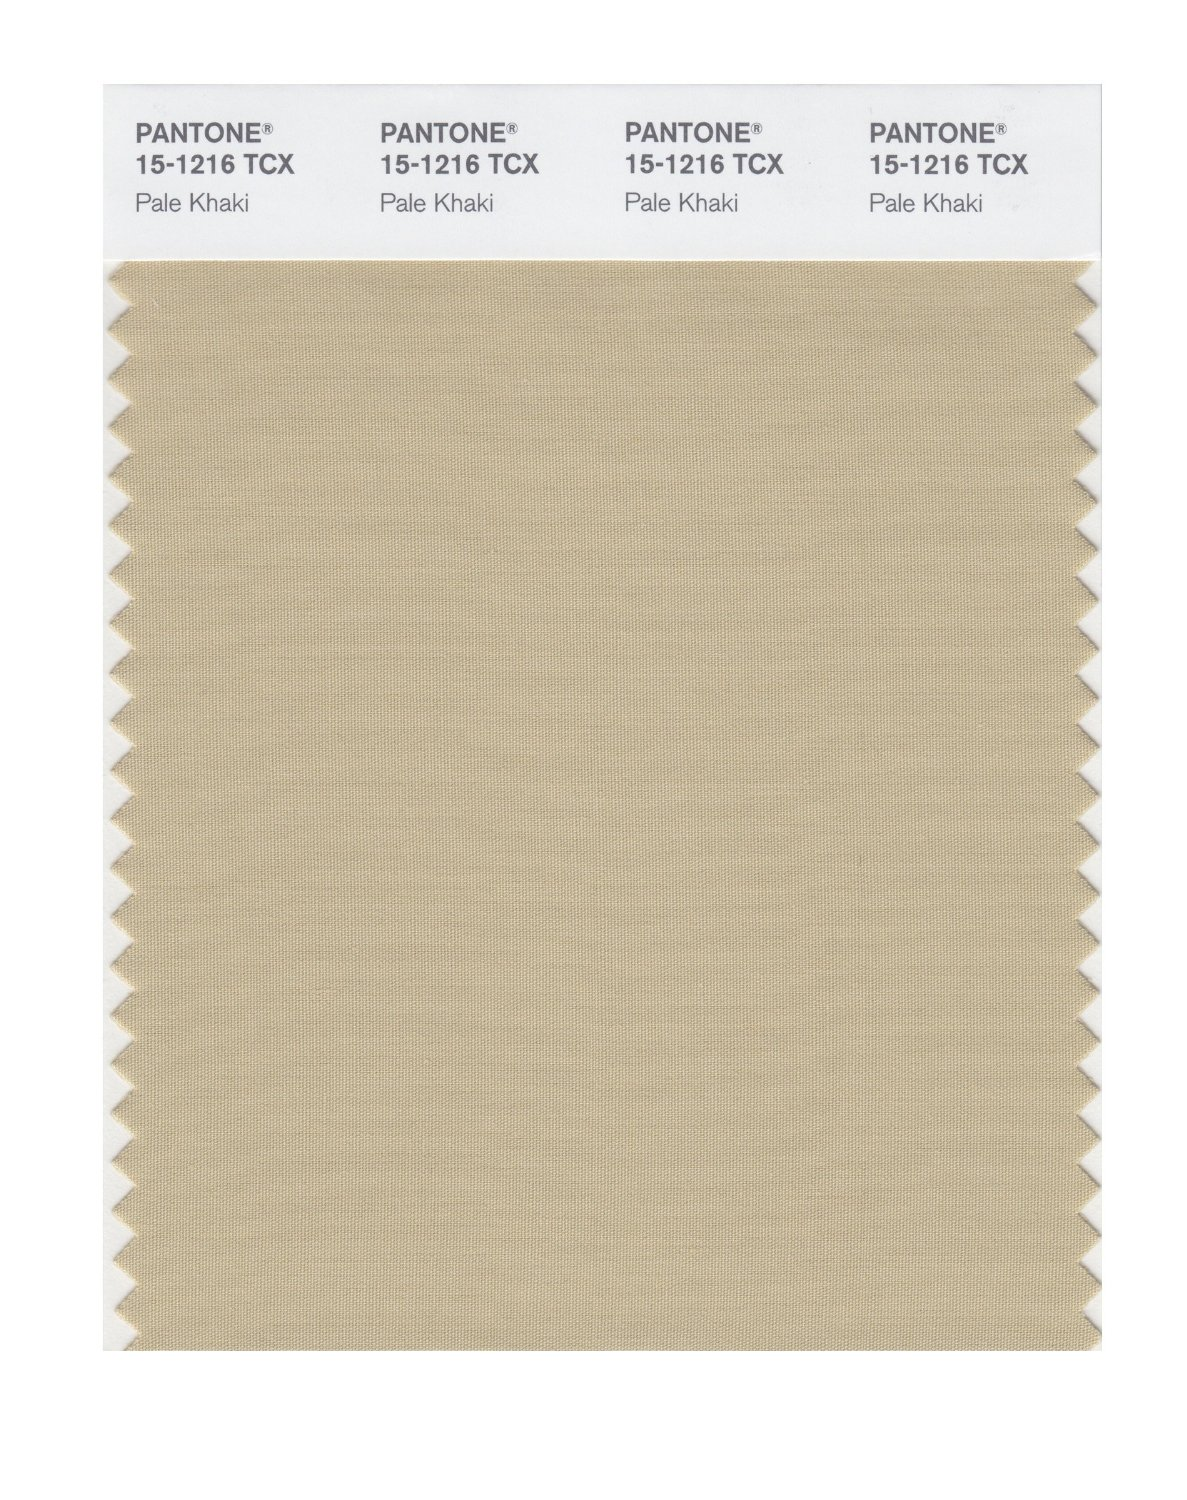 Pantone Smart Swatch 15-1216 Pale Khaki